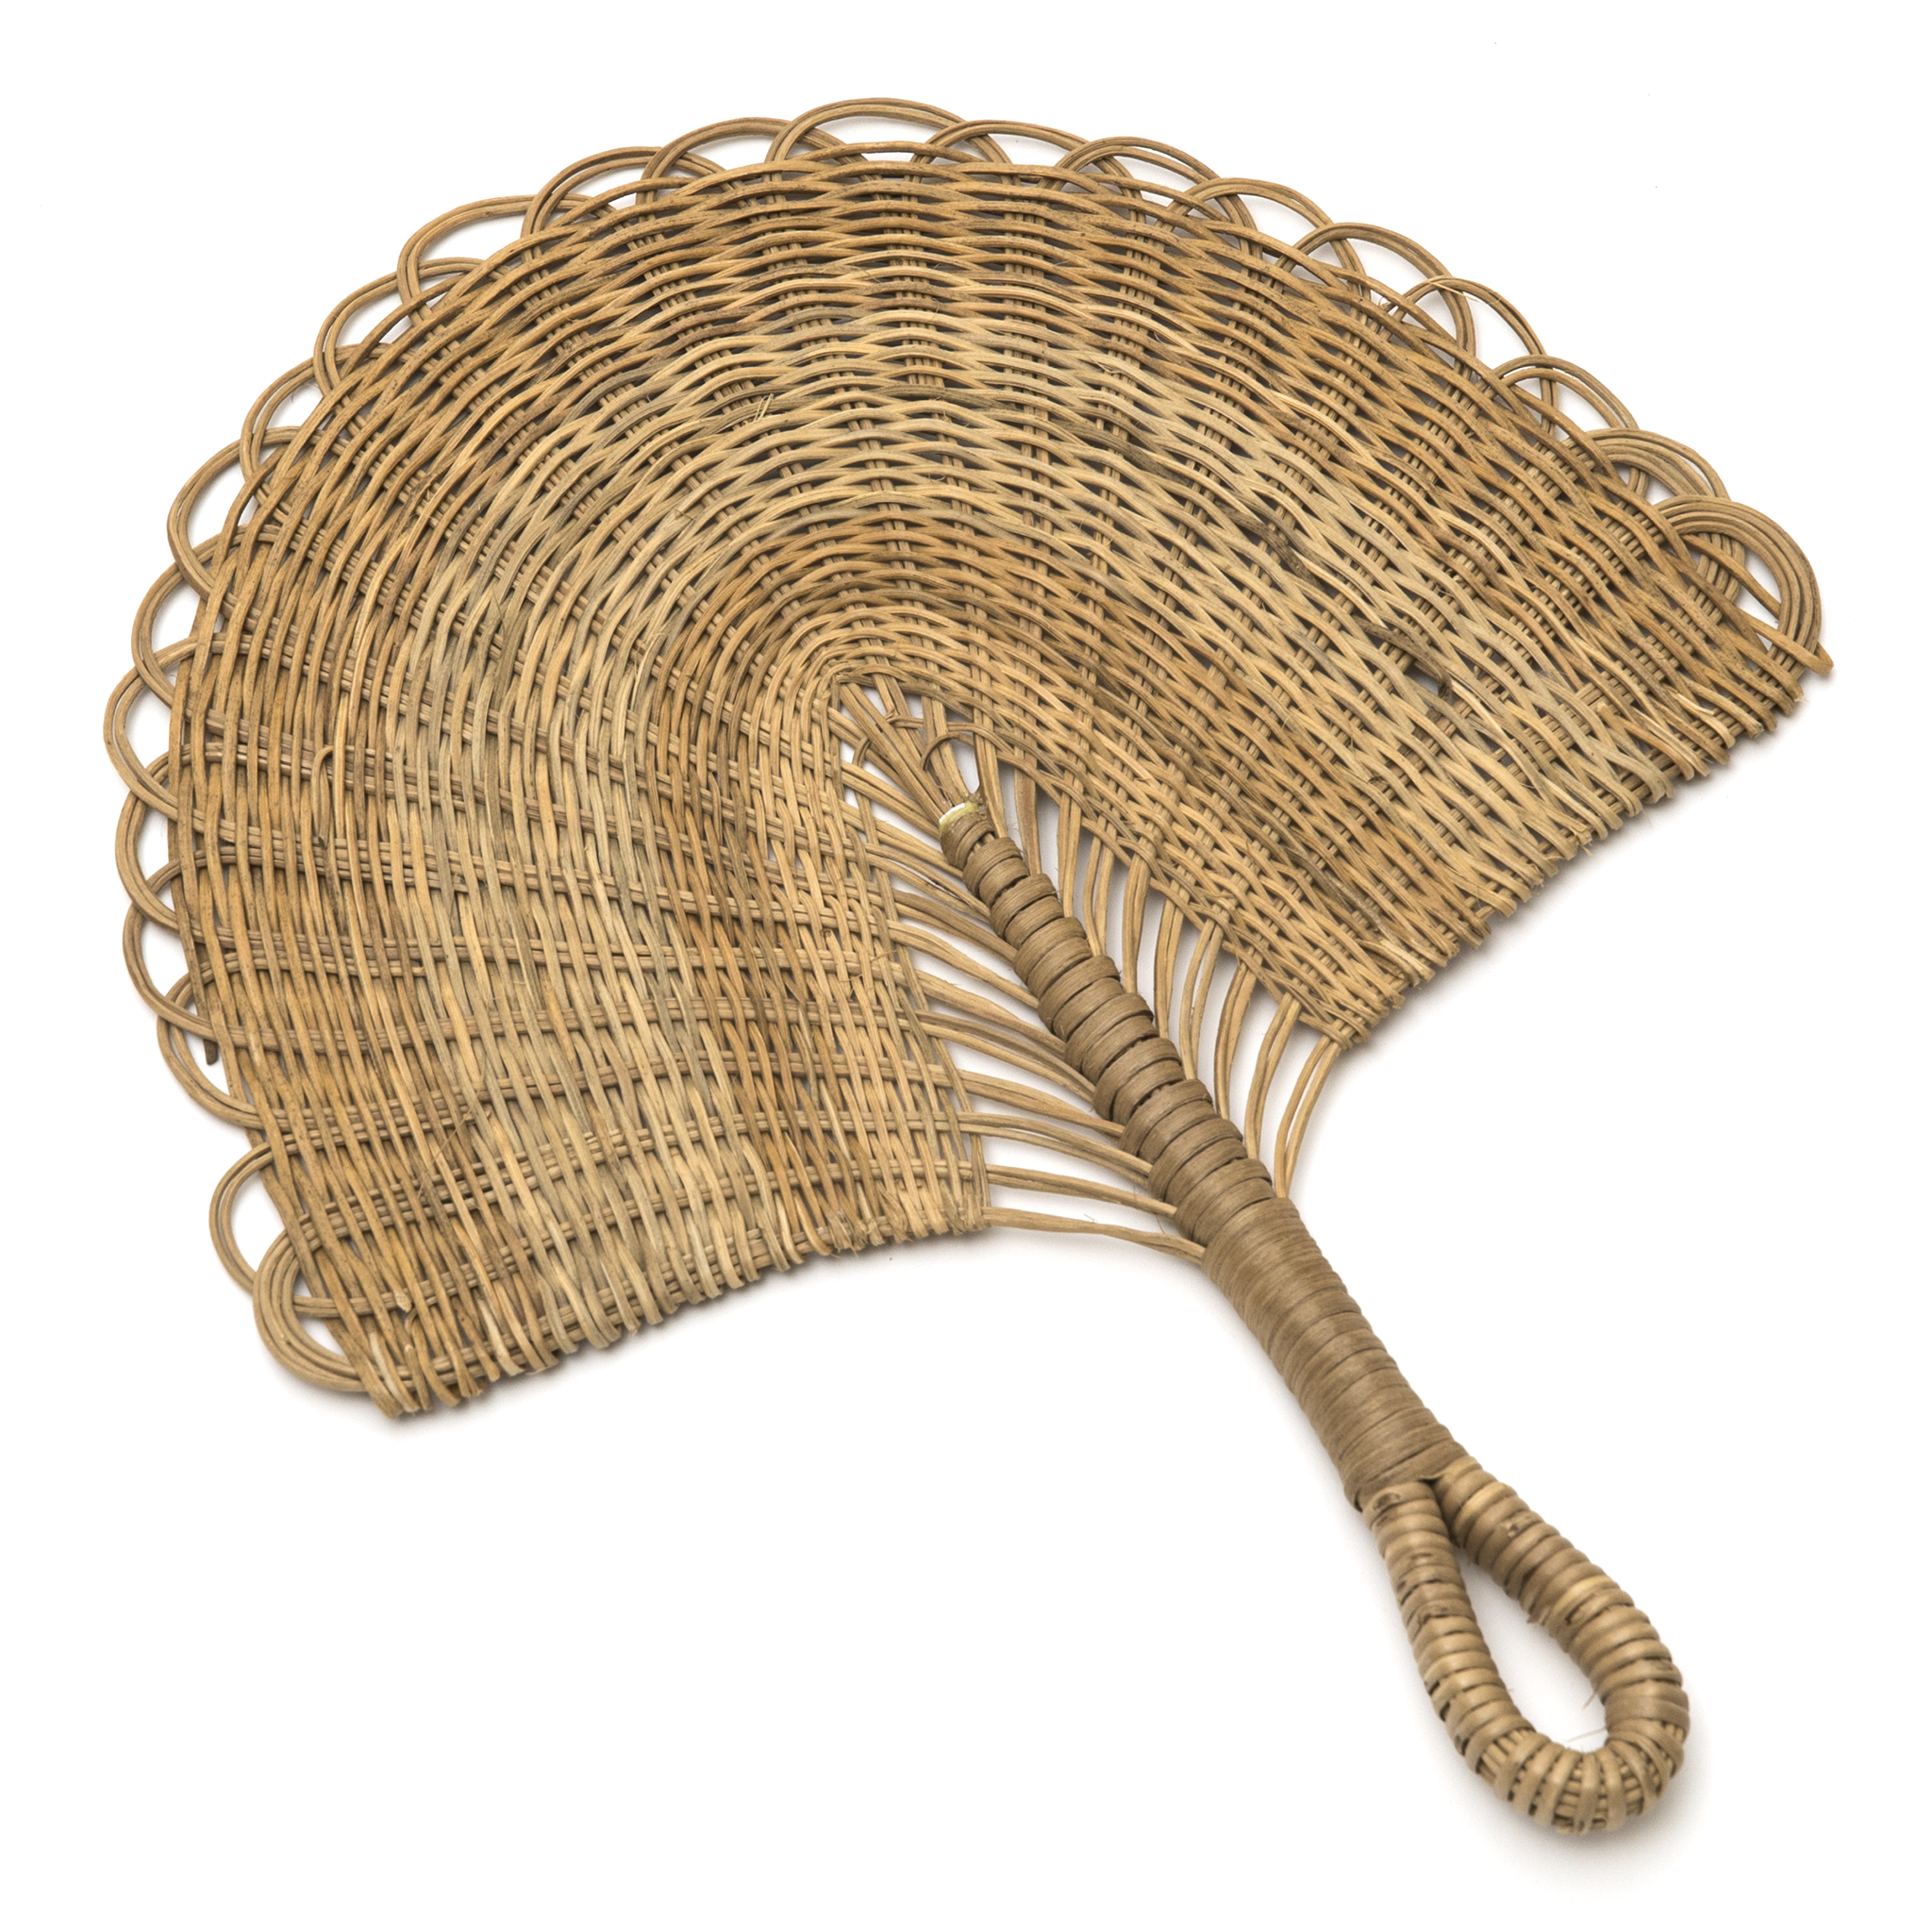 Intiearth Amazon Jungle Straw hand fan